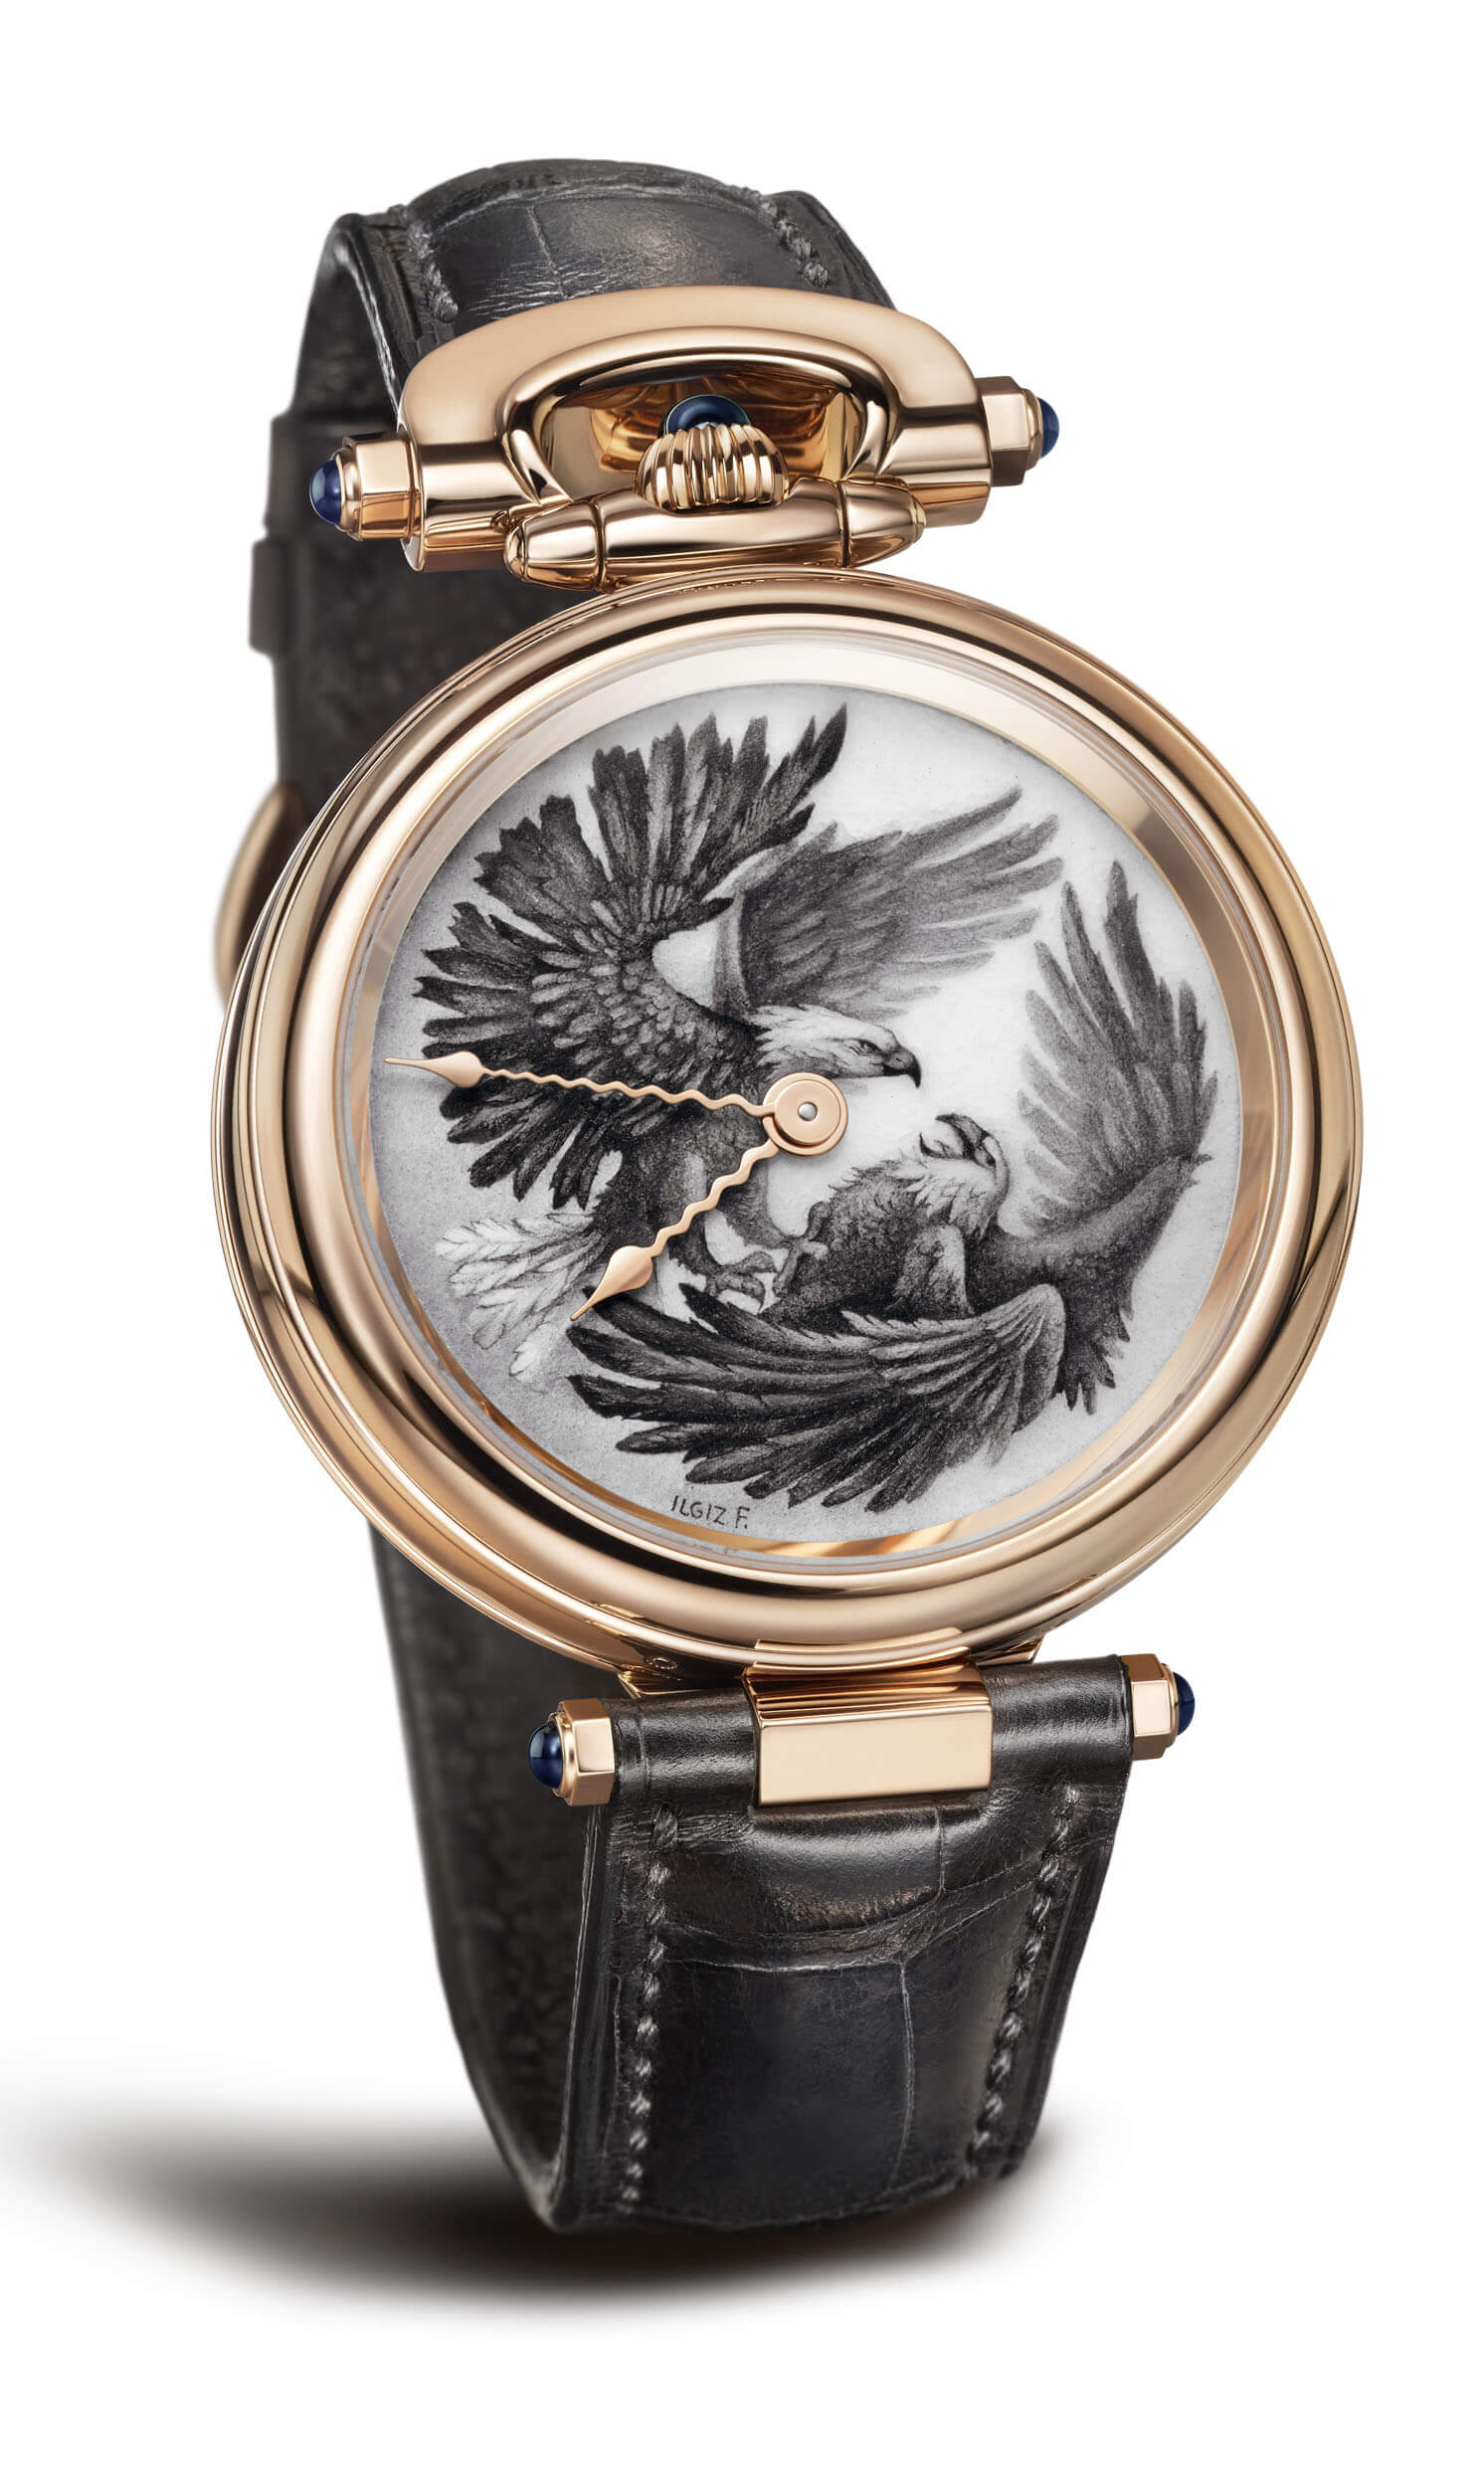 Bovet 1822 Amadeo Fleurier 43 'Two Bald Eagles'